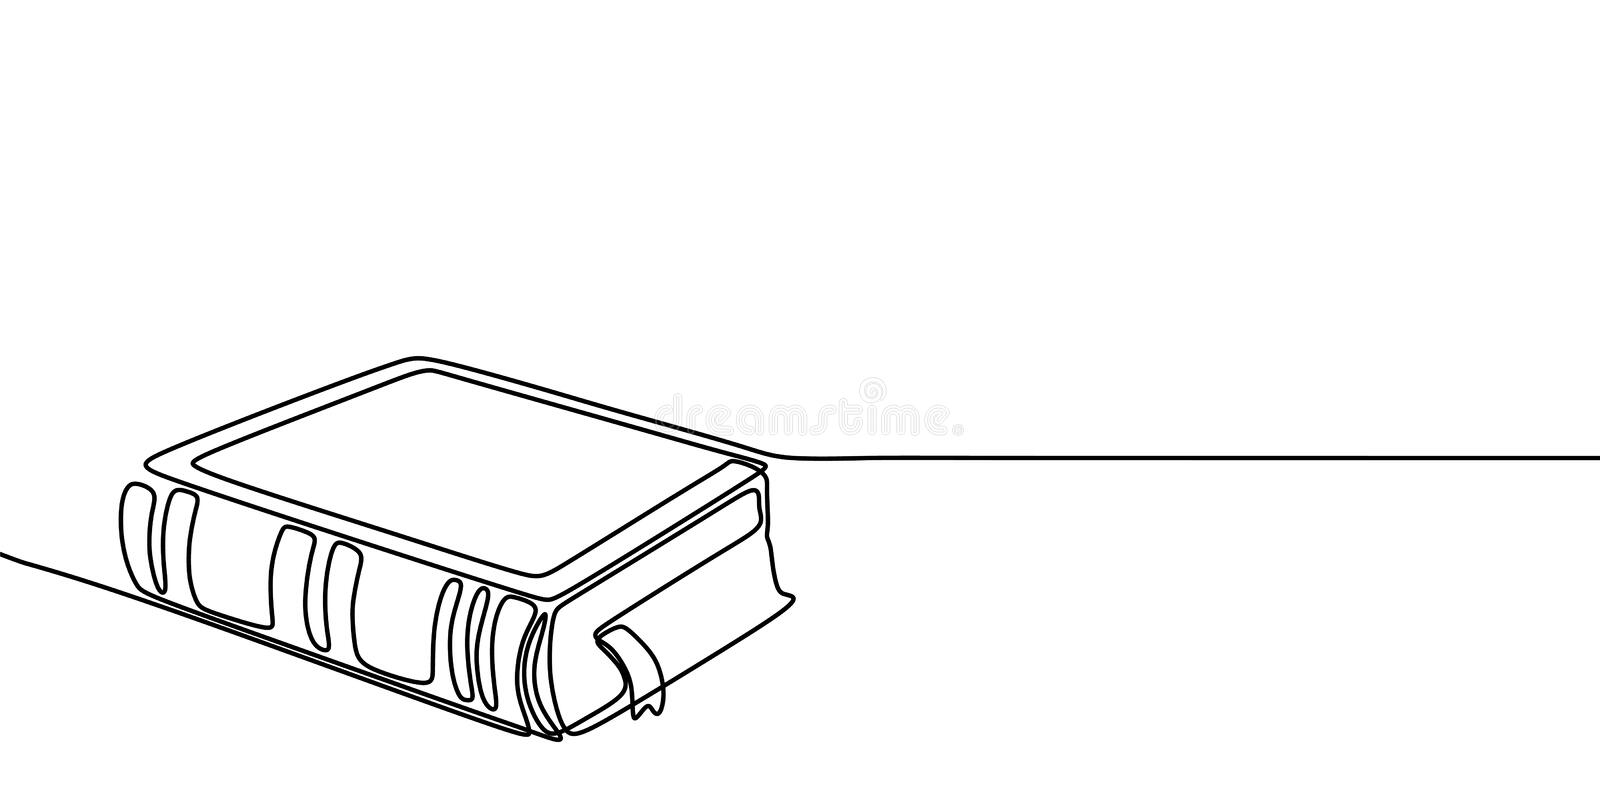 Book one line drawing banner. Continuous hand drawn minimalist minimalism design isolated on white background vector illustration. Symbol, outline, simplicity stock illustration